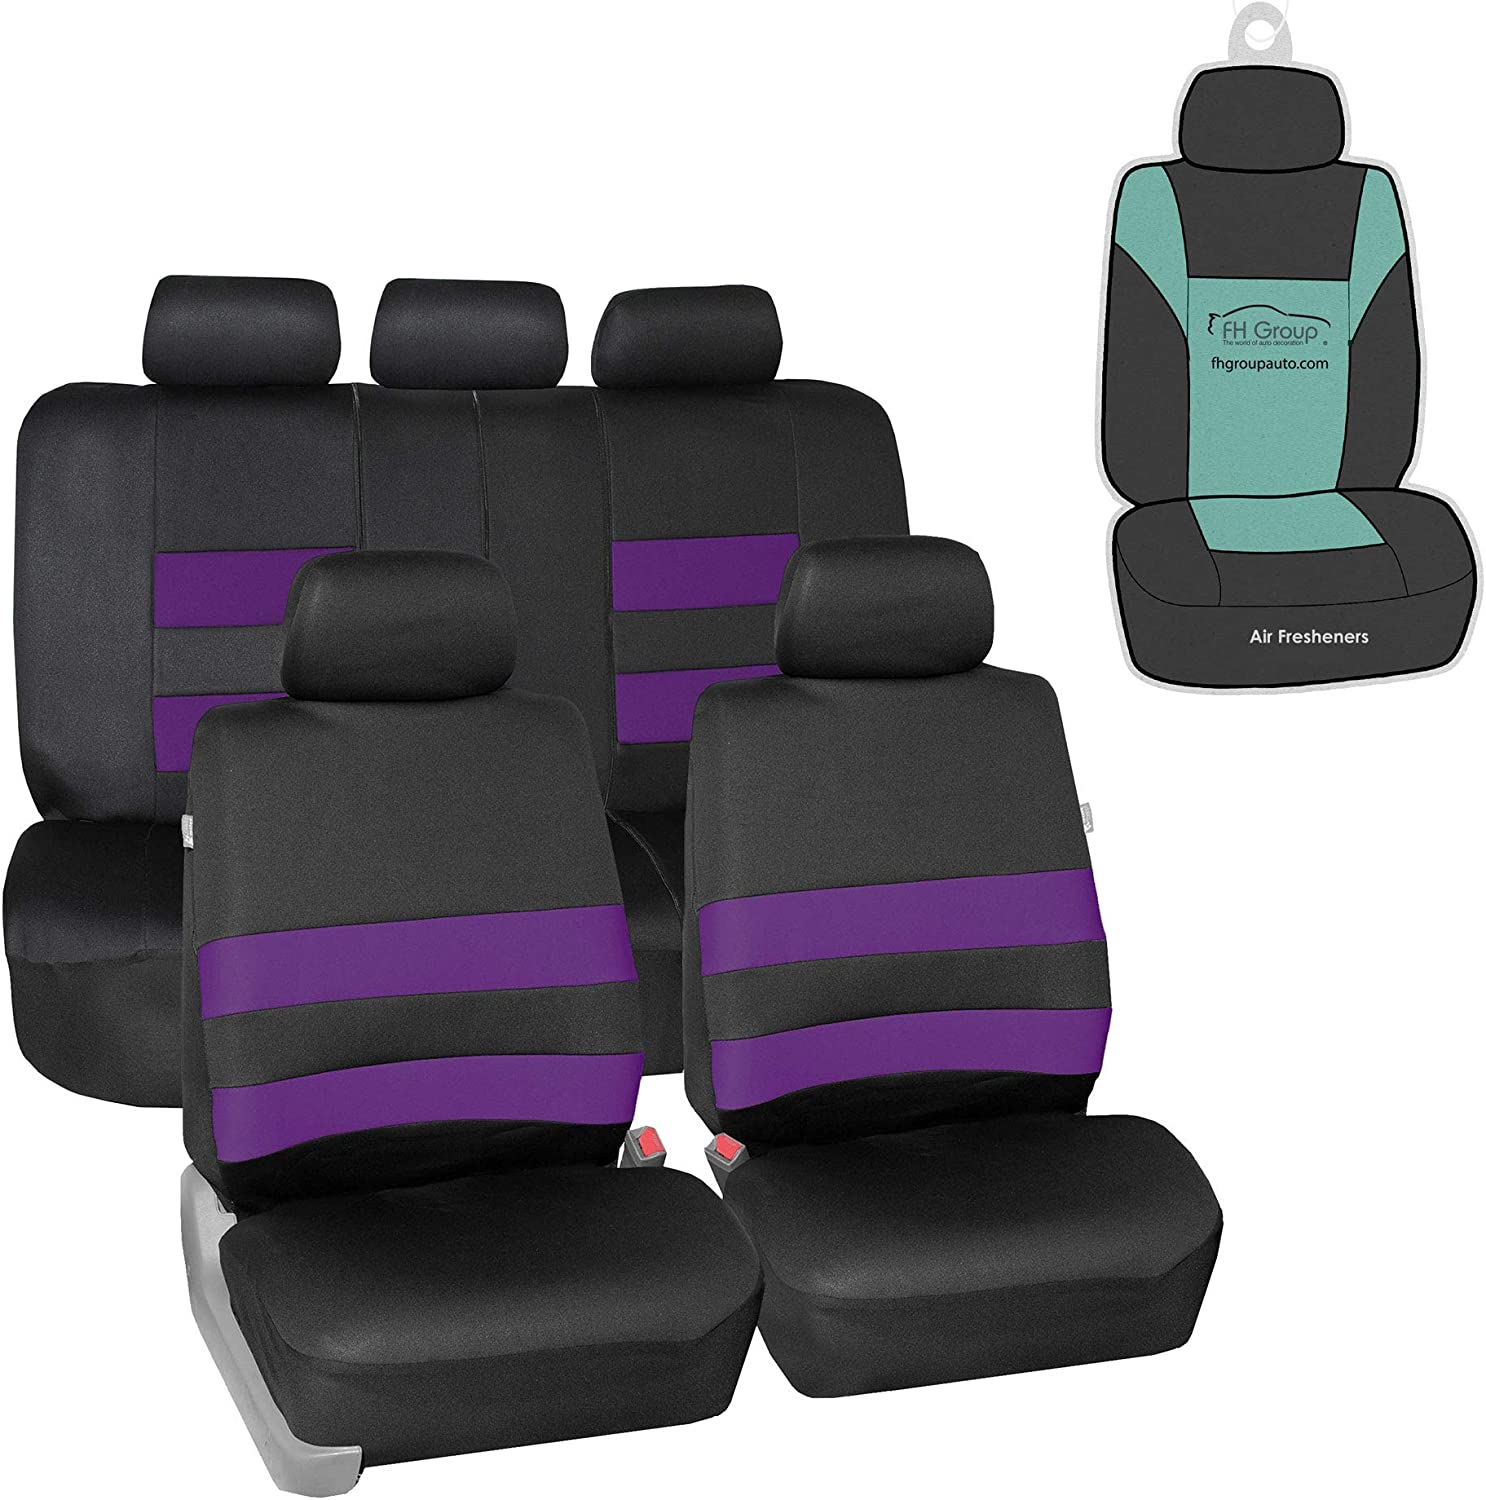 FH Group FB087115 Premium Neoprene Seat Covers (Purple) Full Set with Gift - Universal Fit for Cars Trucks and SUVs